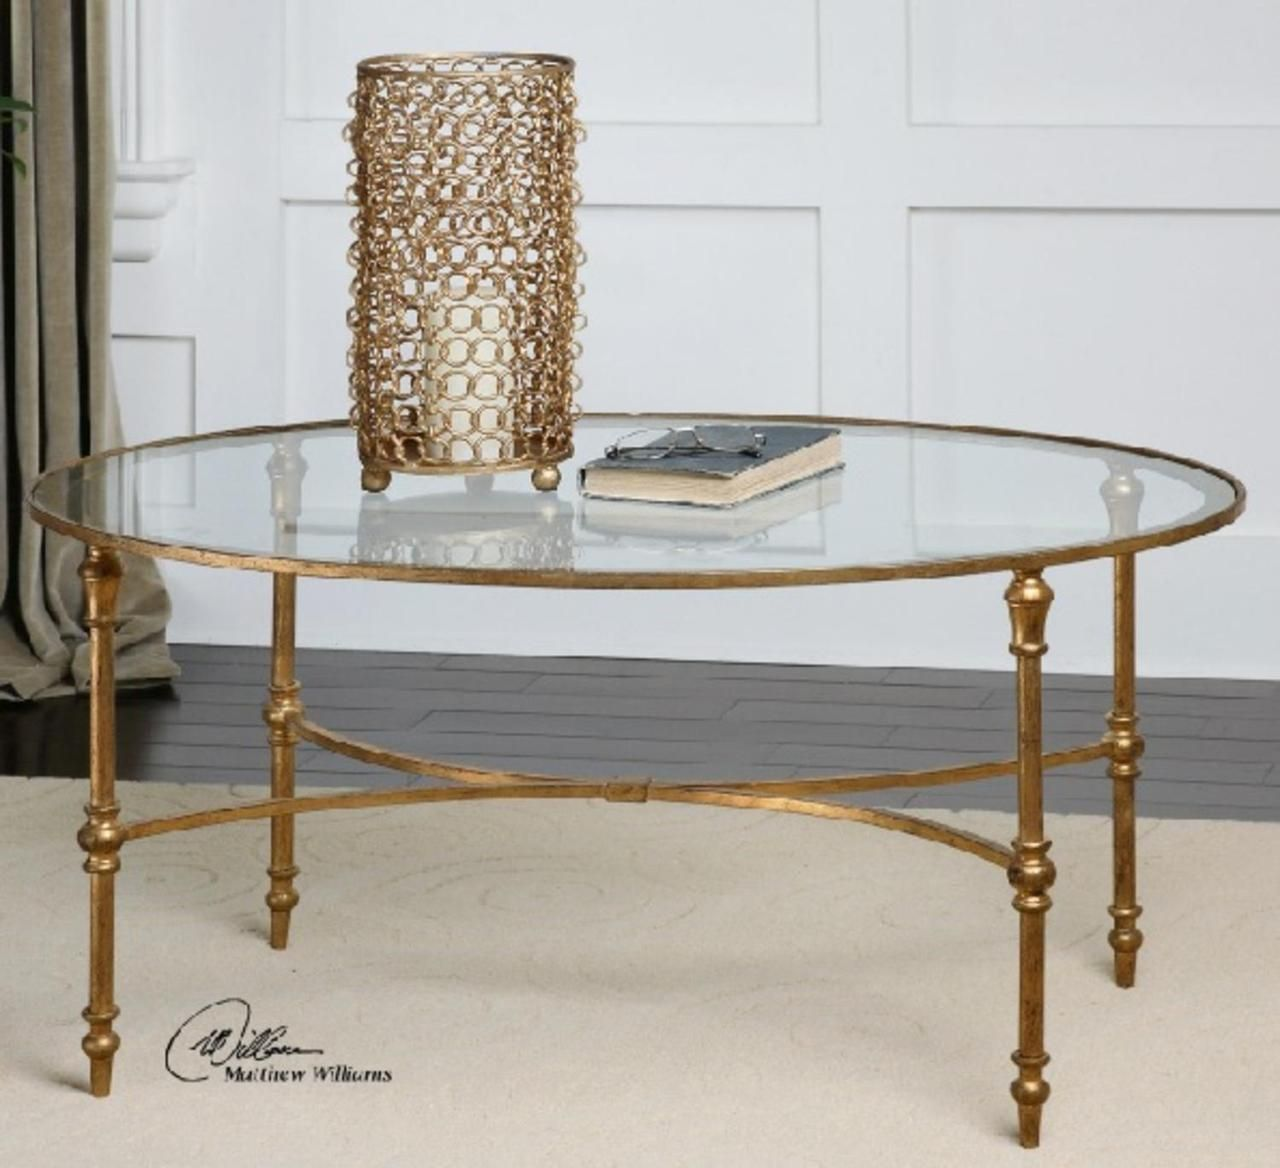 3 25 Golden Forged Iron Oval Glass Coffee Table Gold Coffee Table Oval Glass Coffee Table Glass Coffee Table [ 1168 x 1280 Pixel ]